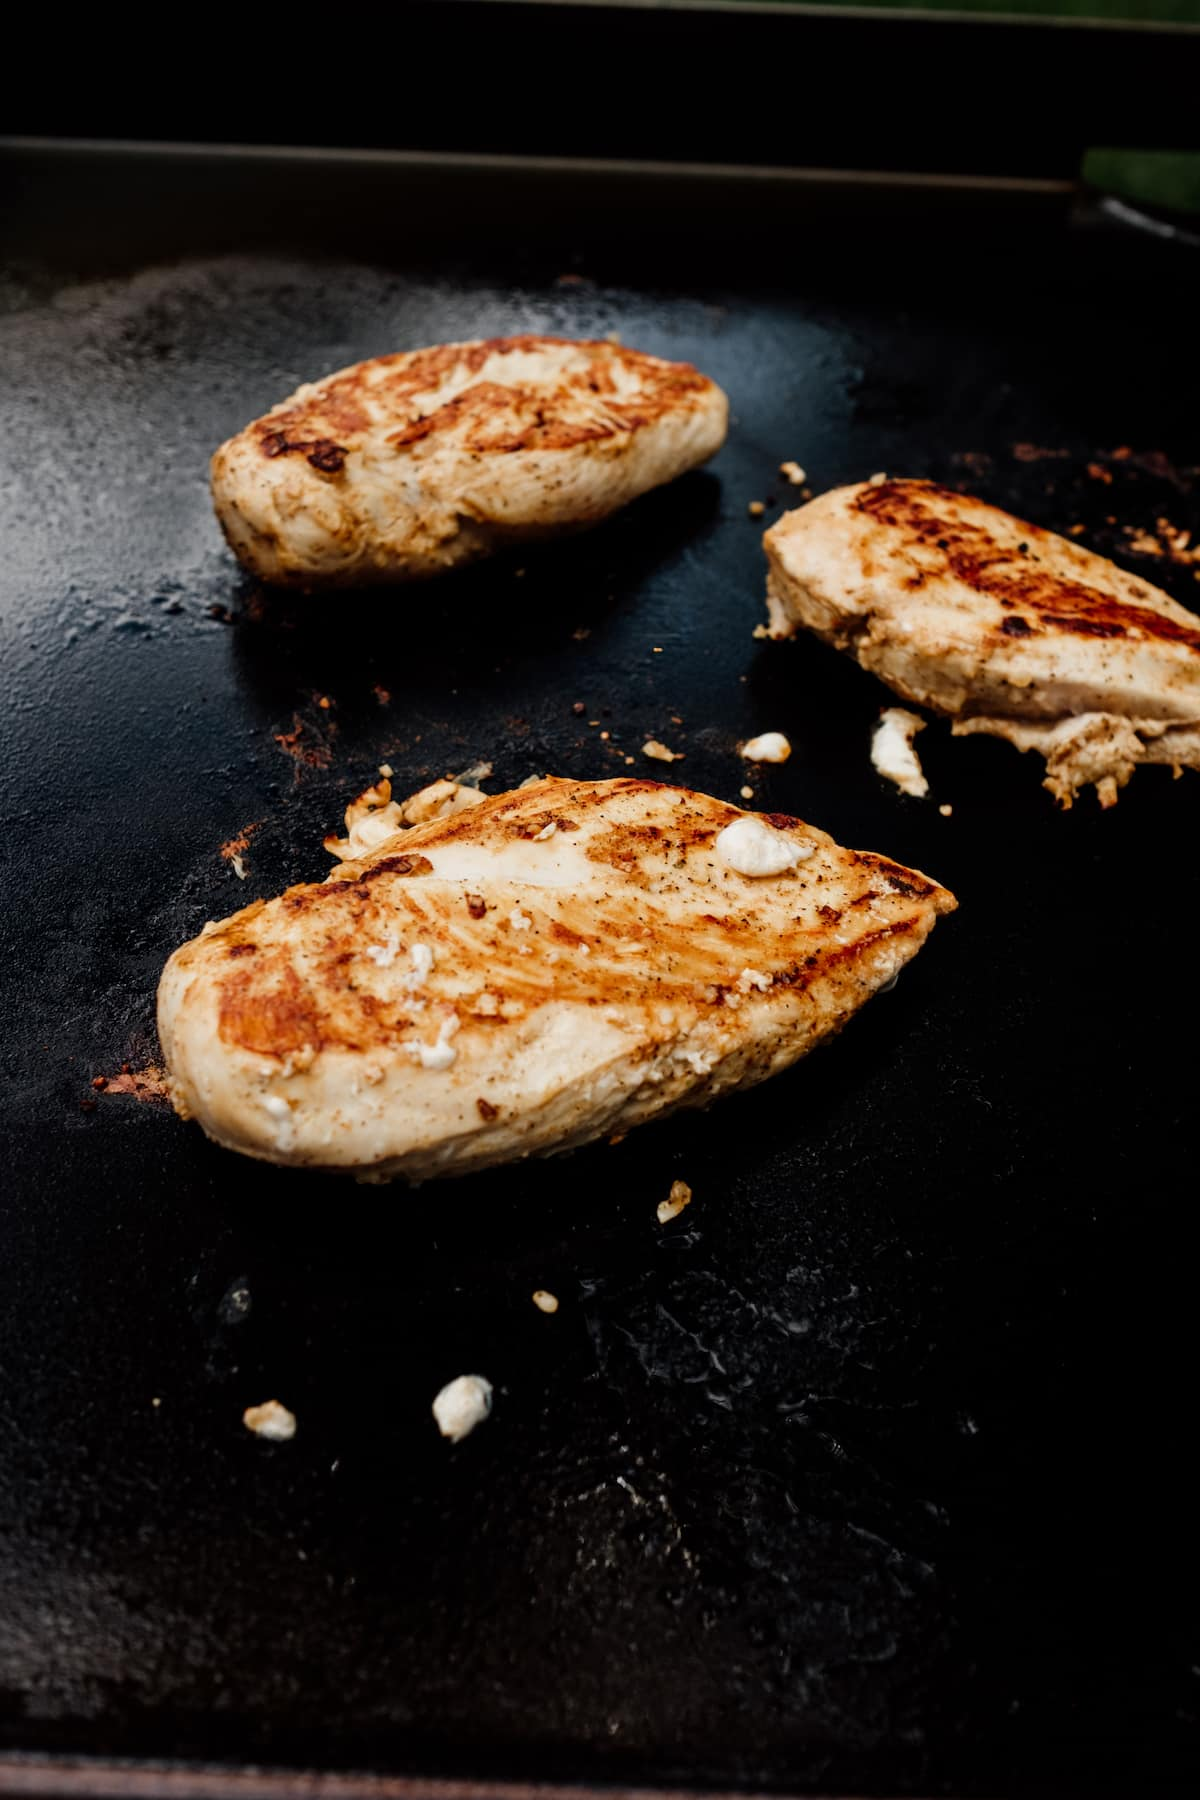 Grilled chicken breasts on flat top griddle